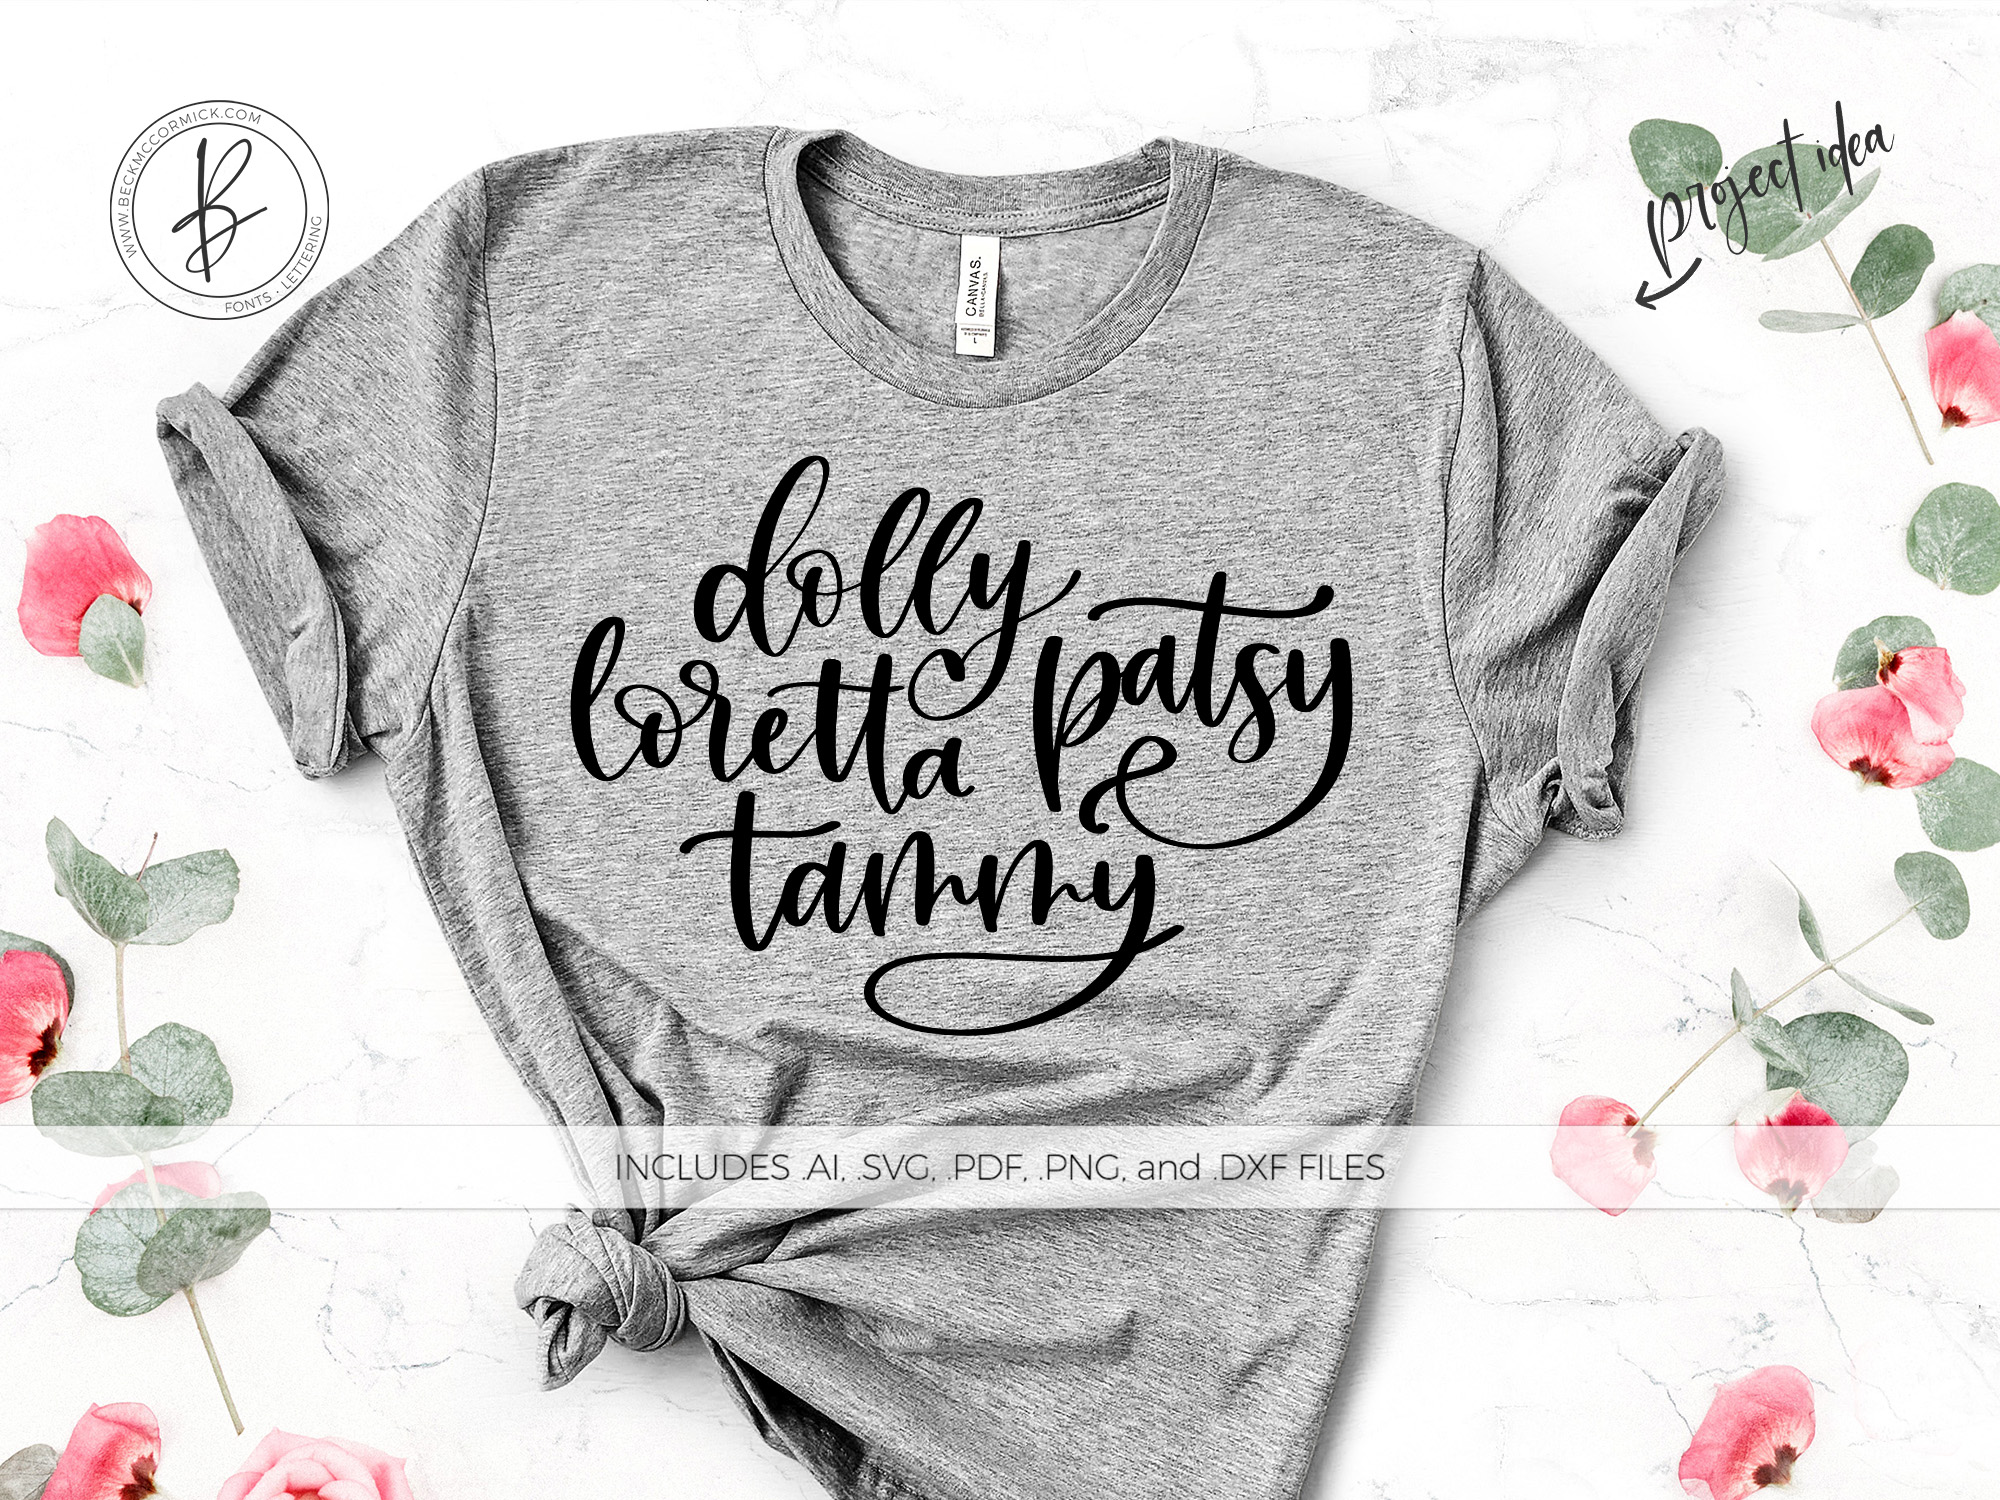 Download Free Dolly Loretta Patsy Tammy Graphic By Beckmccormick Creative for Cricut Explore, Silhouette and other cutting machines.